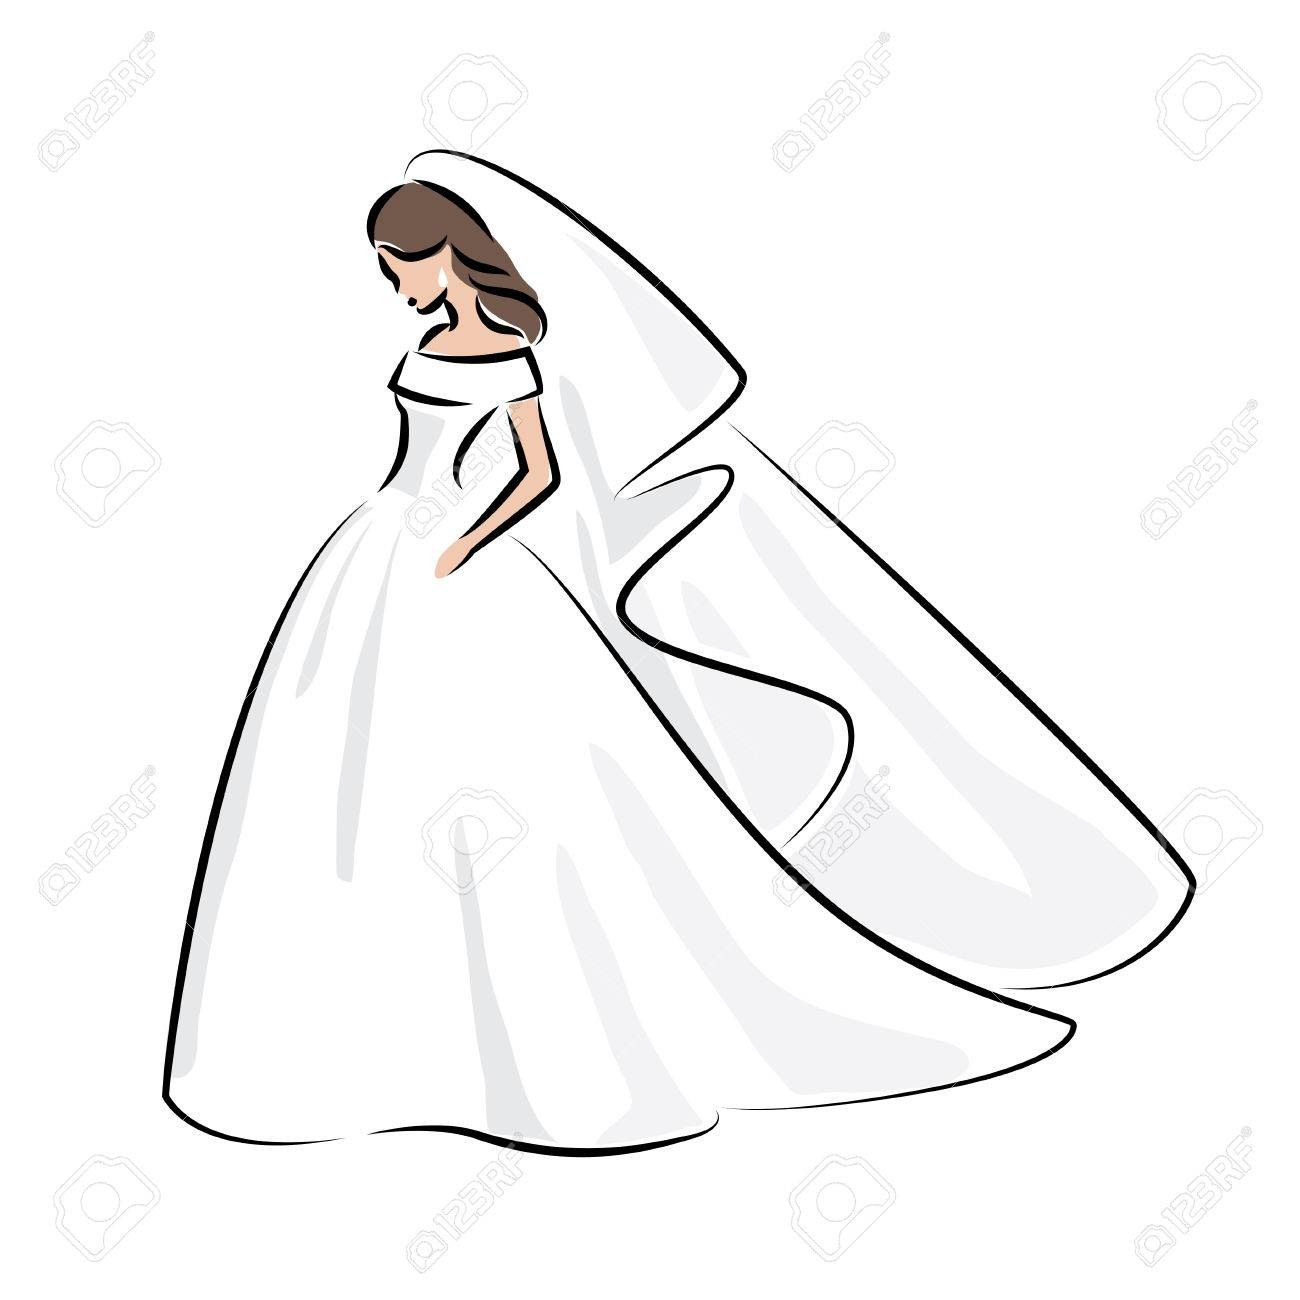 Abstract Outline Color Illustration Of A Young Elegant Bride In Wedding Dress With Veil Over Her: Abstract Art Wedding Dress At Websimilar.org